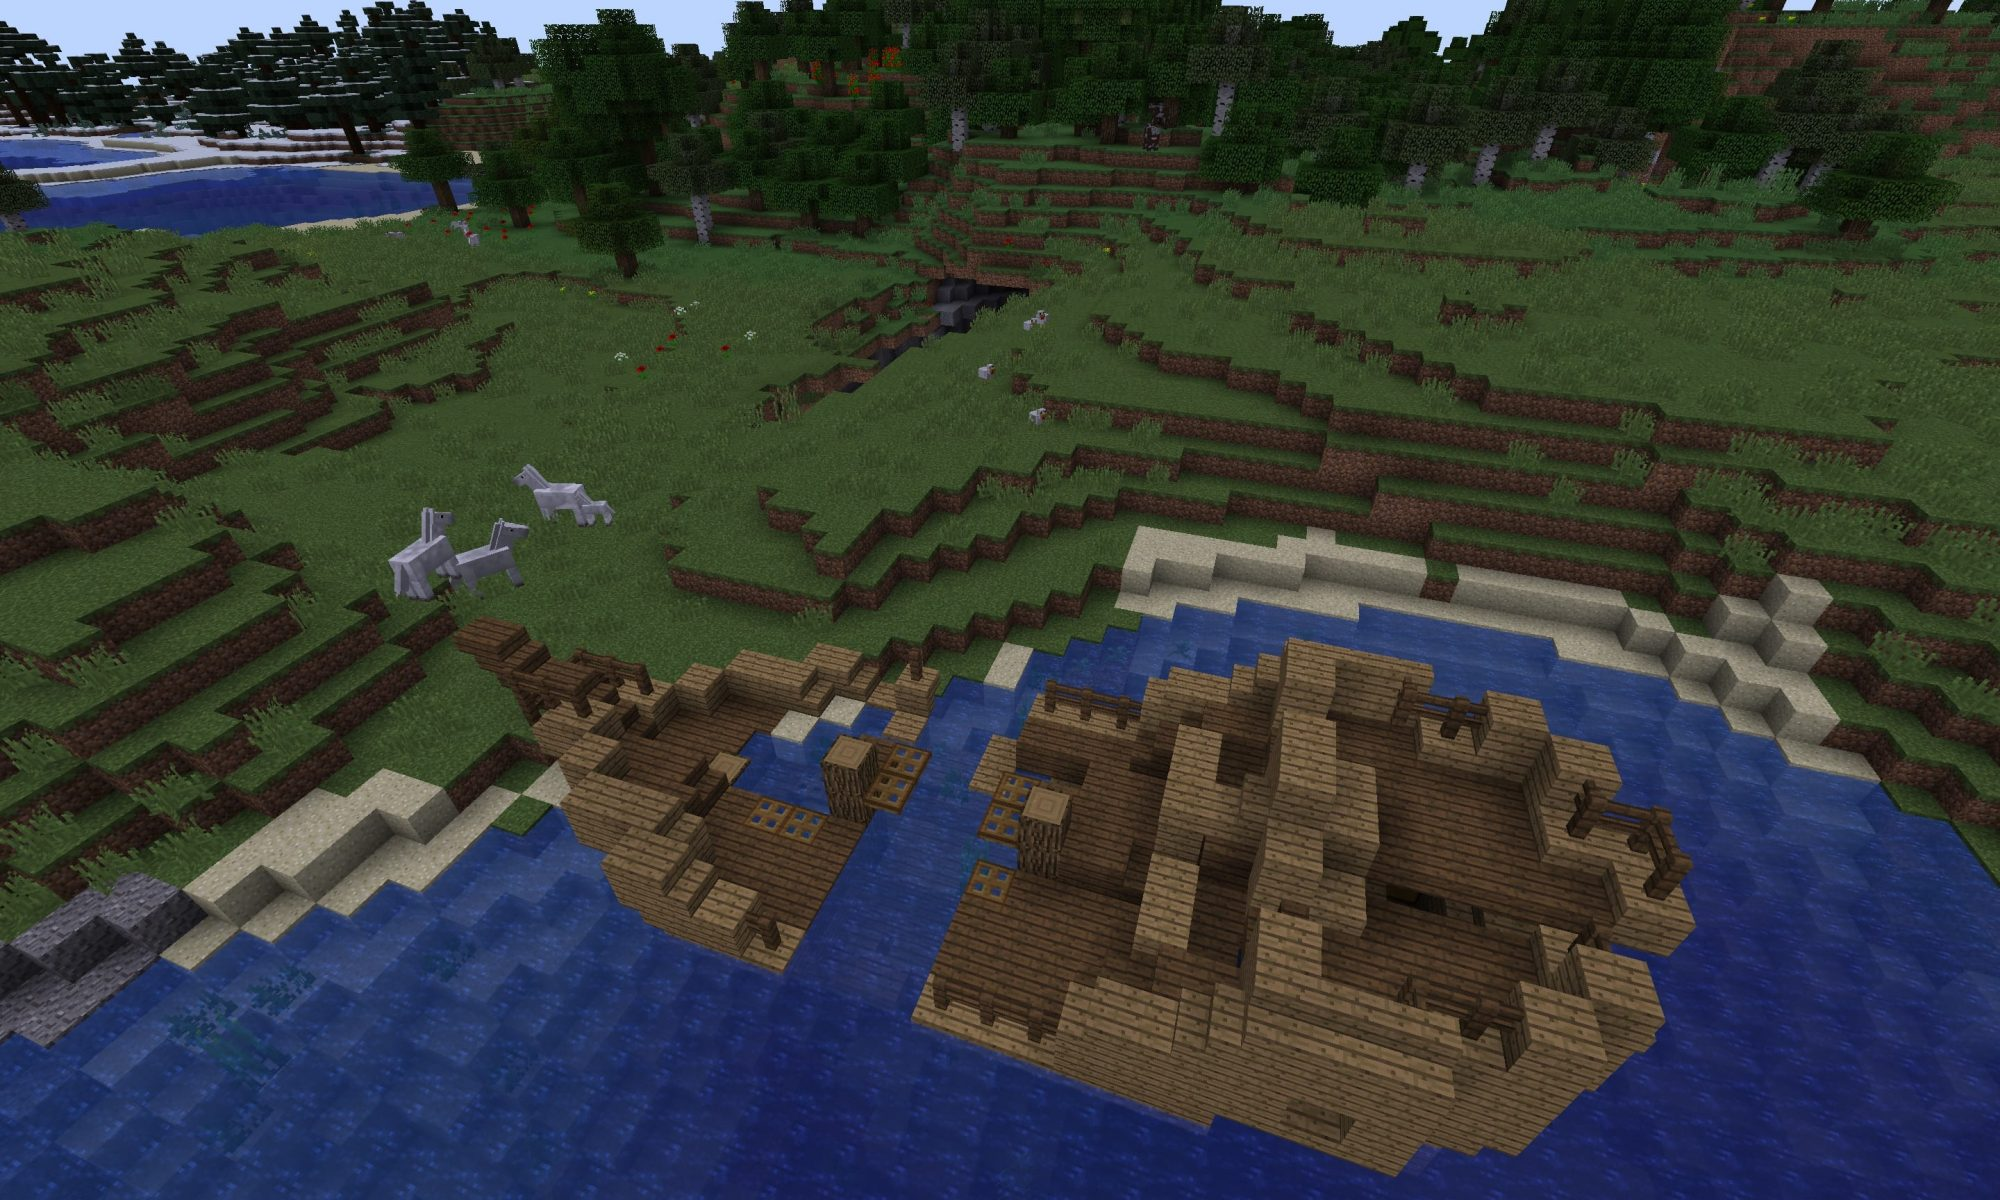 Shipwreck Seed Plus Ravine With Mineshaft At Spawn Minecraft Seed Hq